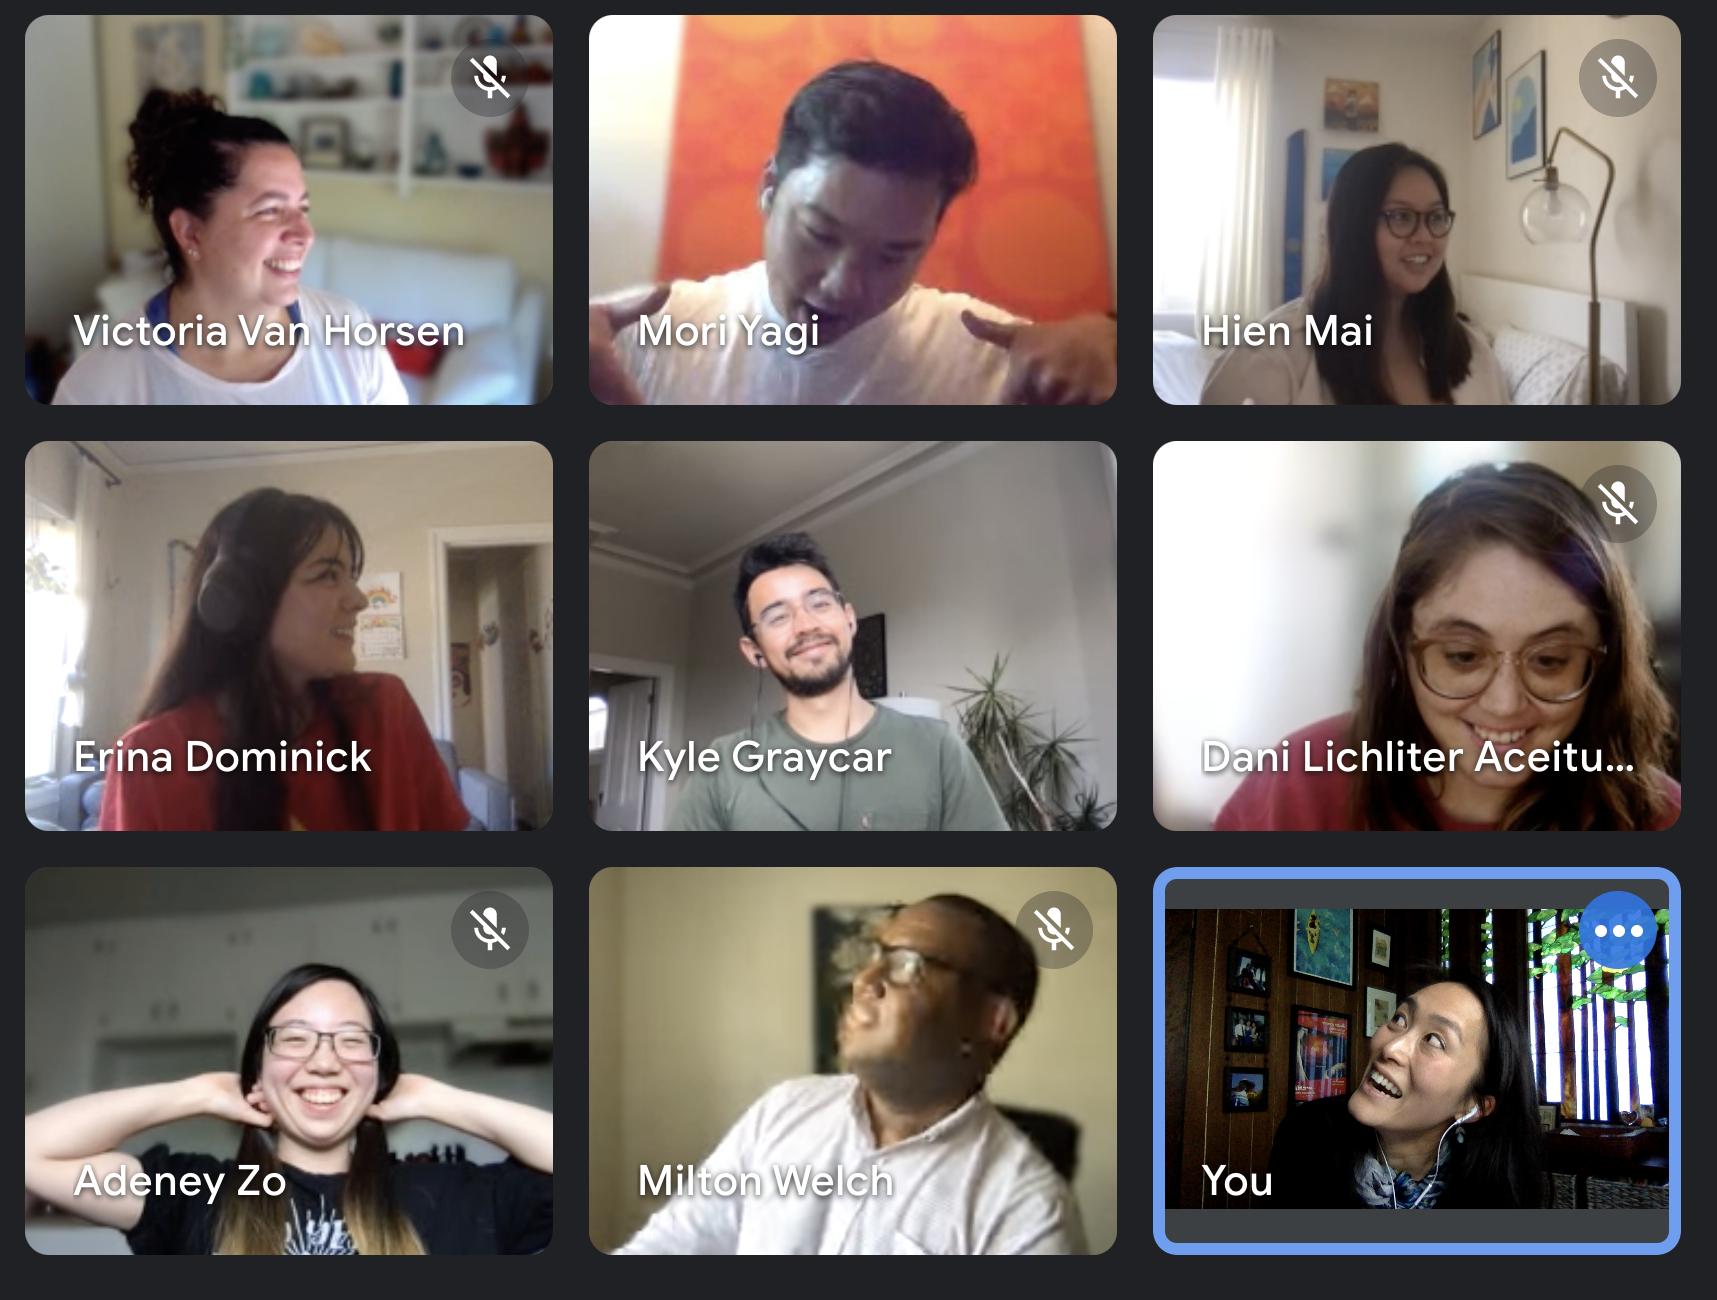 Magooshers being silly on a video chat